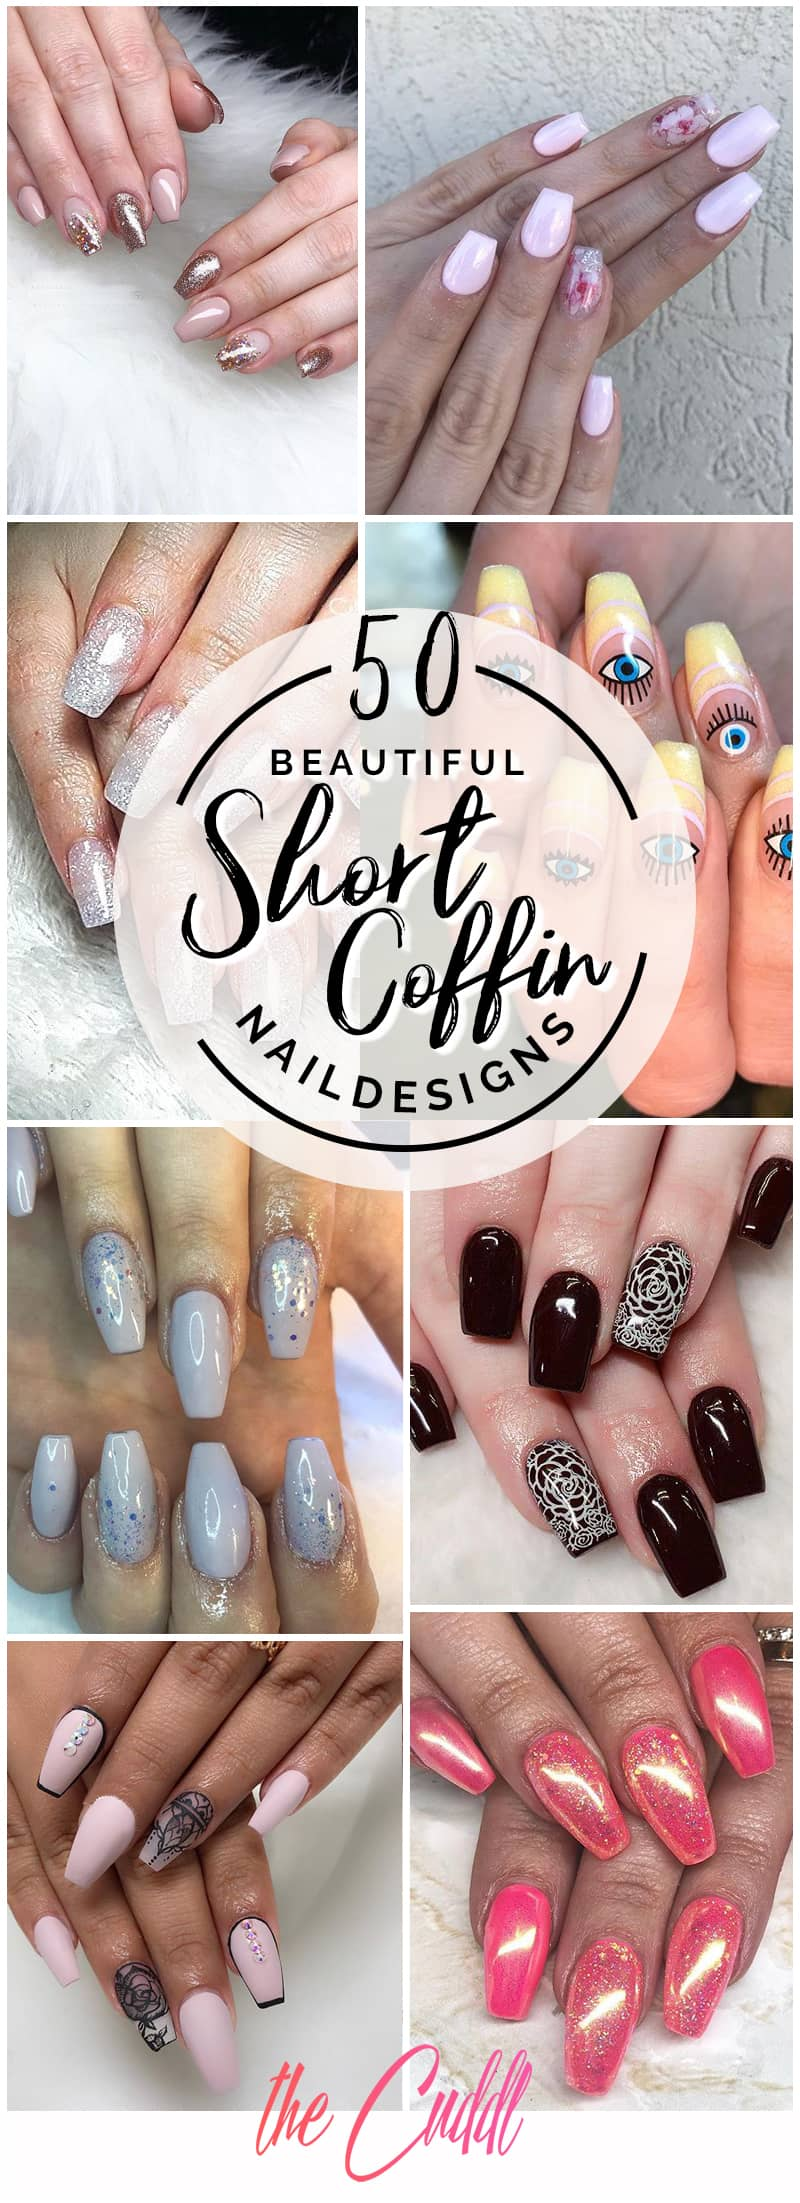 50 Beautiful Short Coffin Nails to Boost Your Style